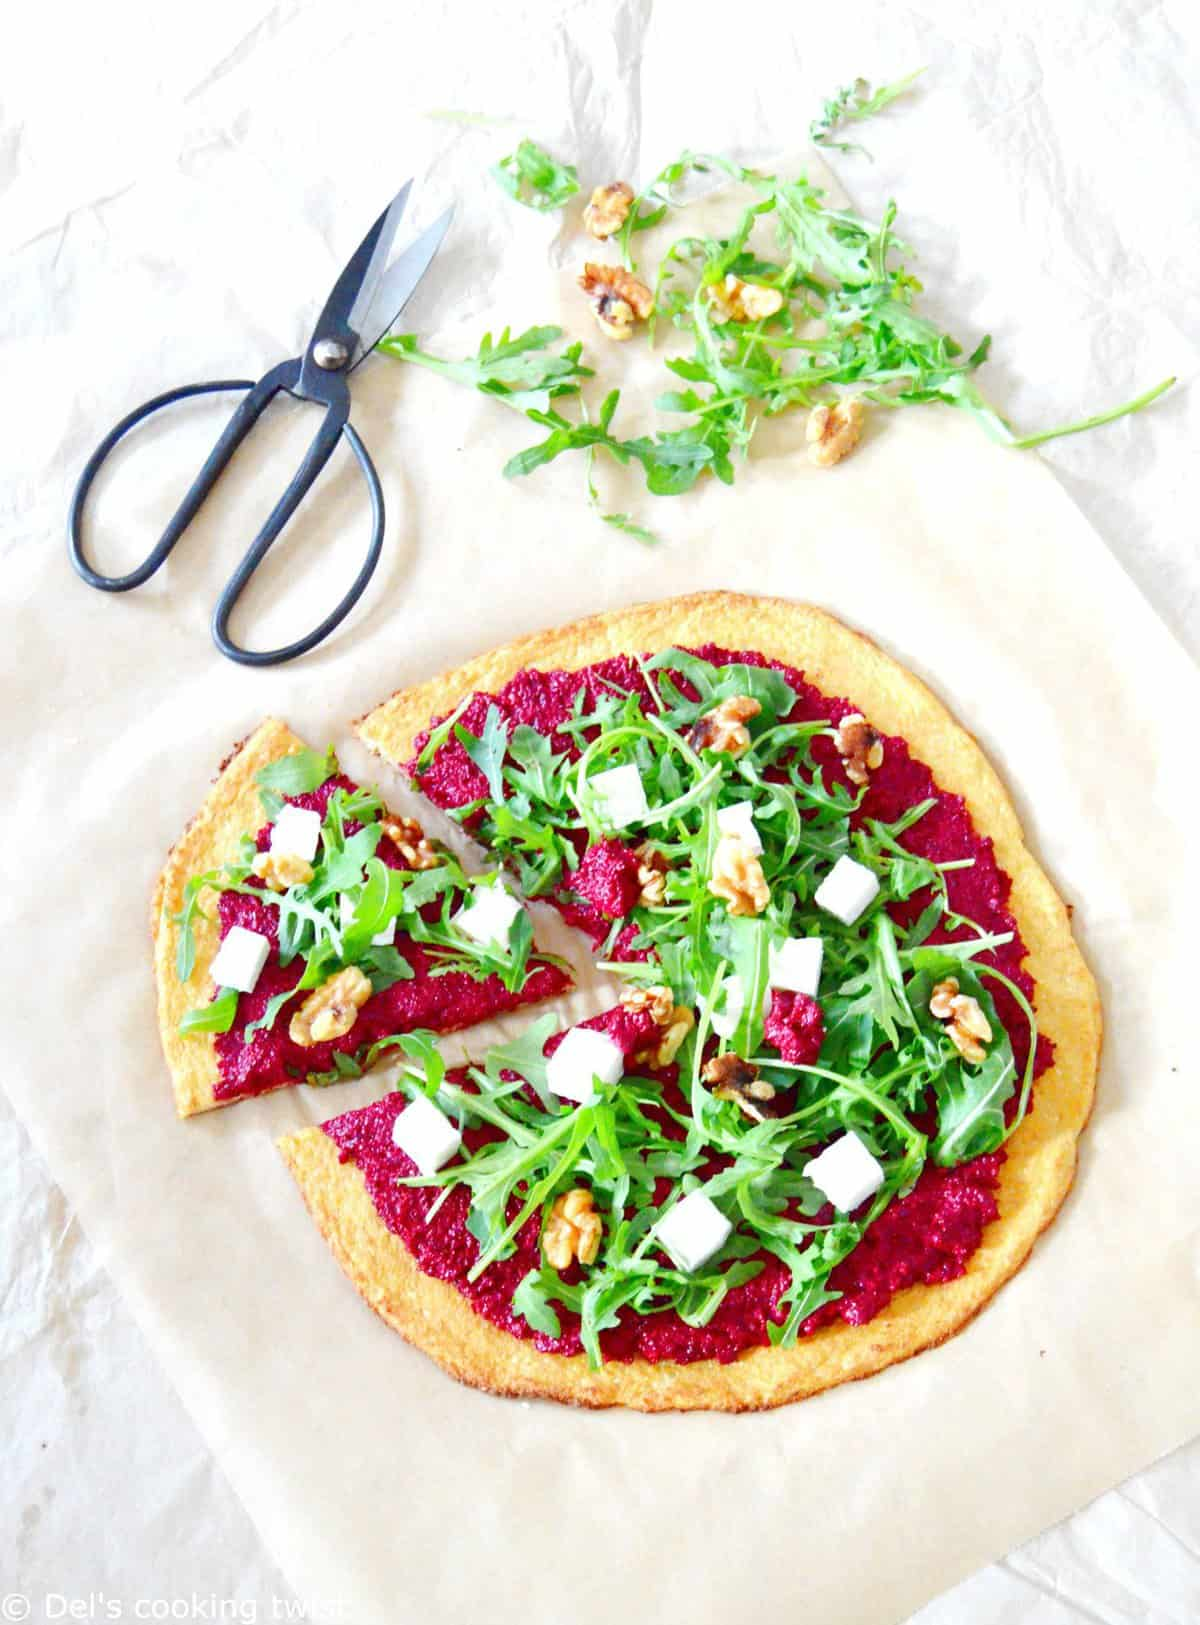 Veggie Beet Pizza with Cauliflower Crust